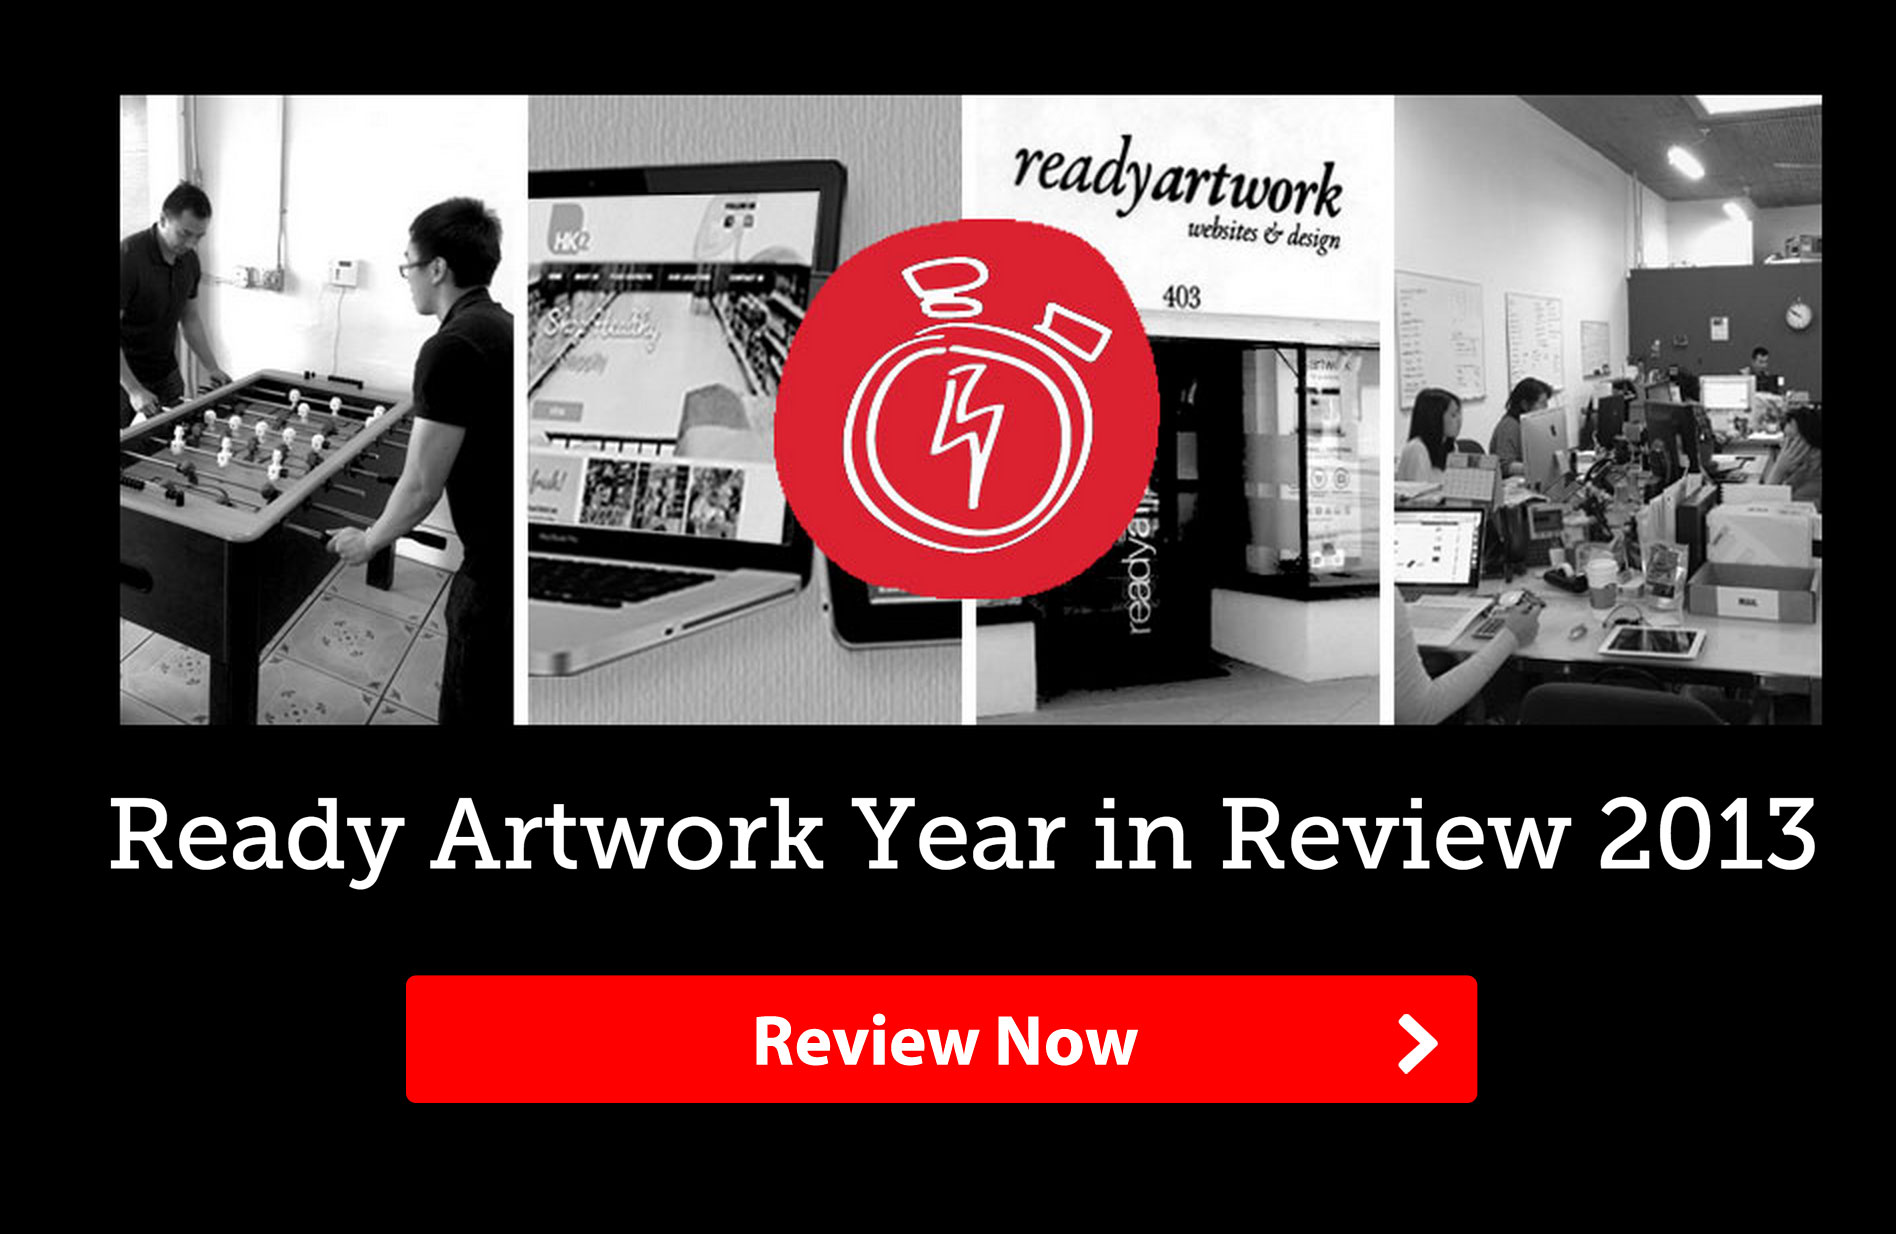 Ready Artwork Year in Review 2013 – Our Accomplishments